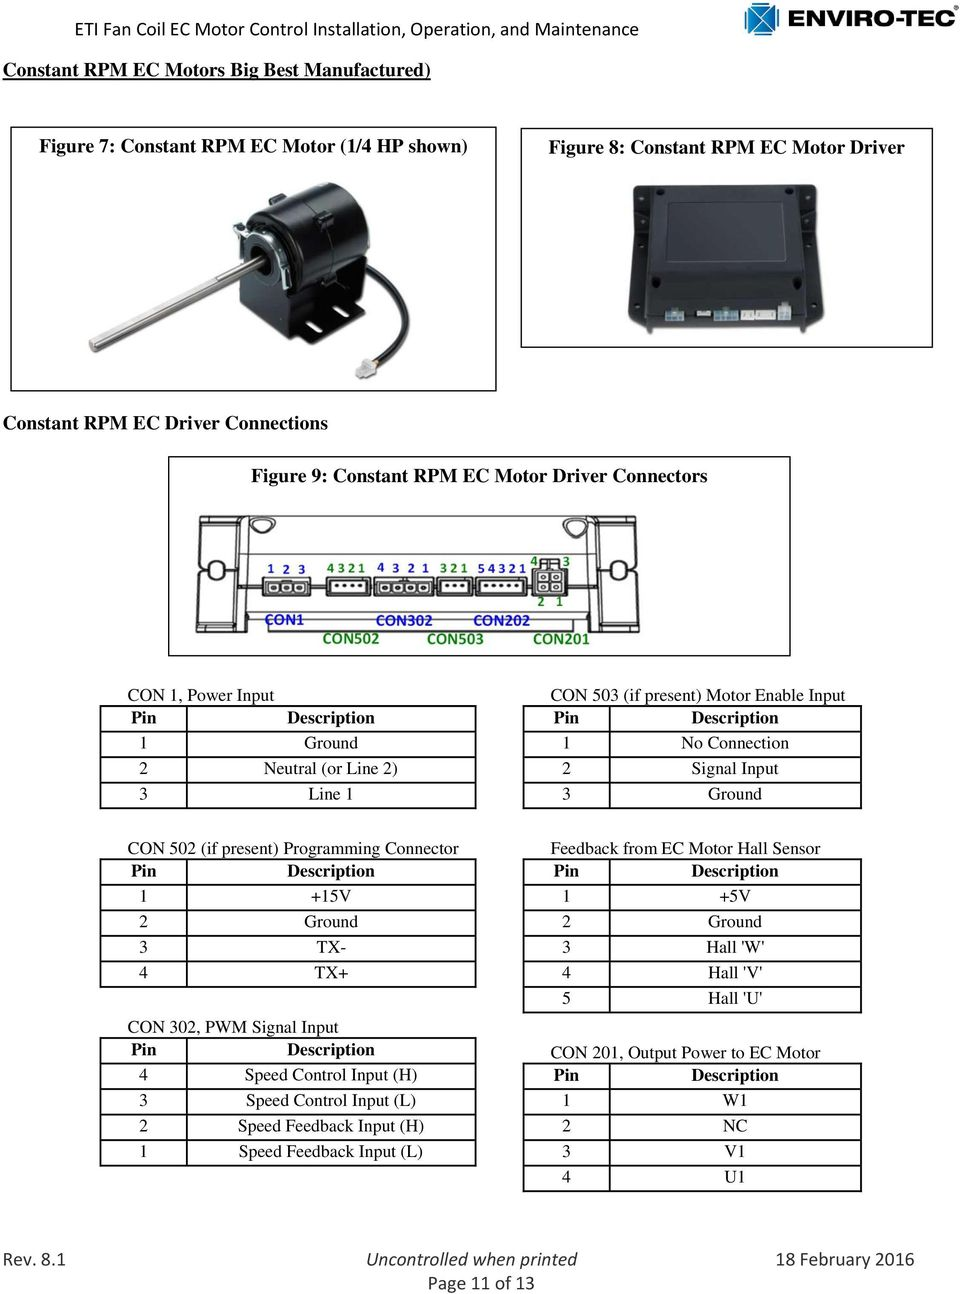 (if present) ming Connector Feedback from EC Motor Hall Sensor Pin Description Pin Description 1 +15V 1 +5V 2 Ground 2 Ground 3 TX- 3 Hall 'W' 4 TX+ 4 Hall 'V' 5 Hall 'U' C 302, PWM Signal Input